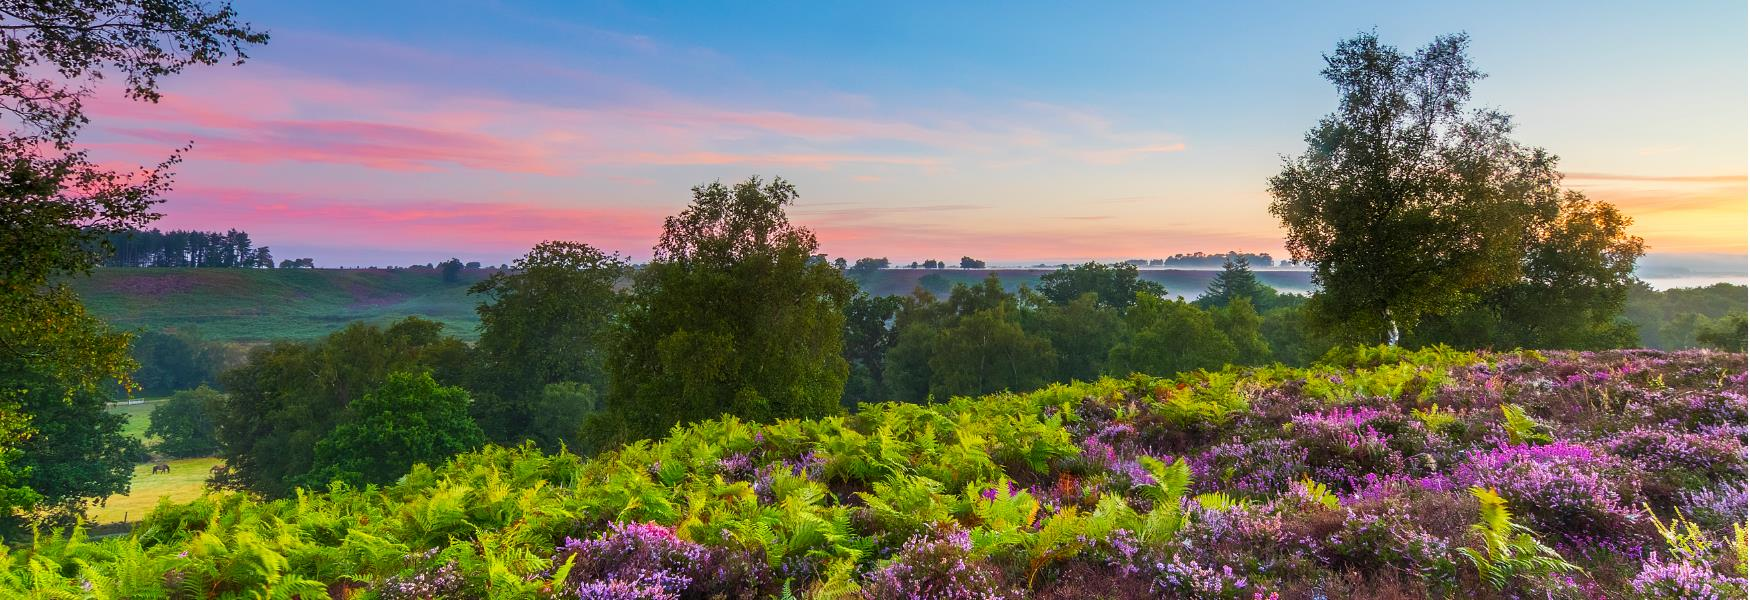 Summer landscape sunrise in the new forest